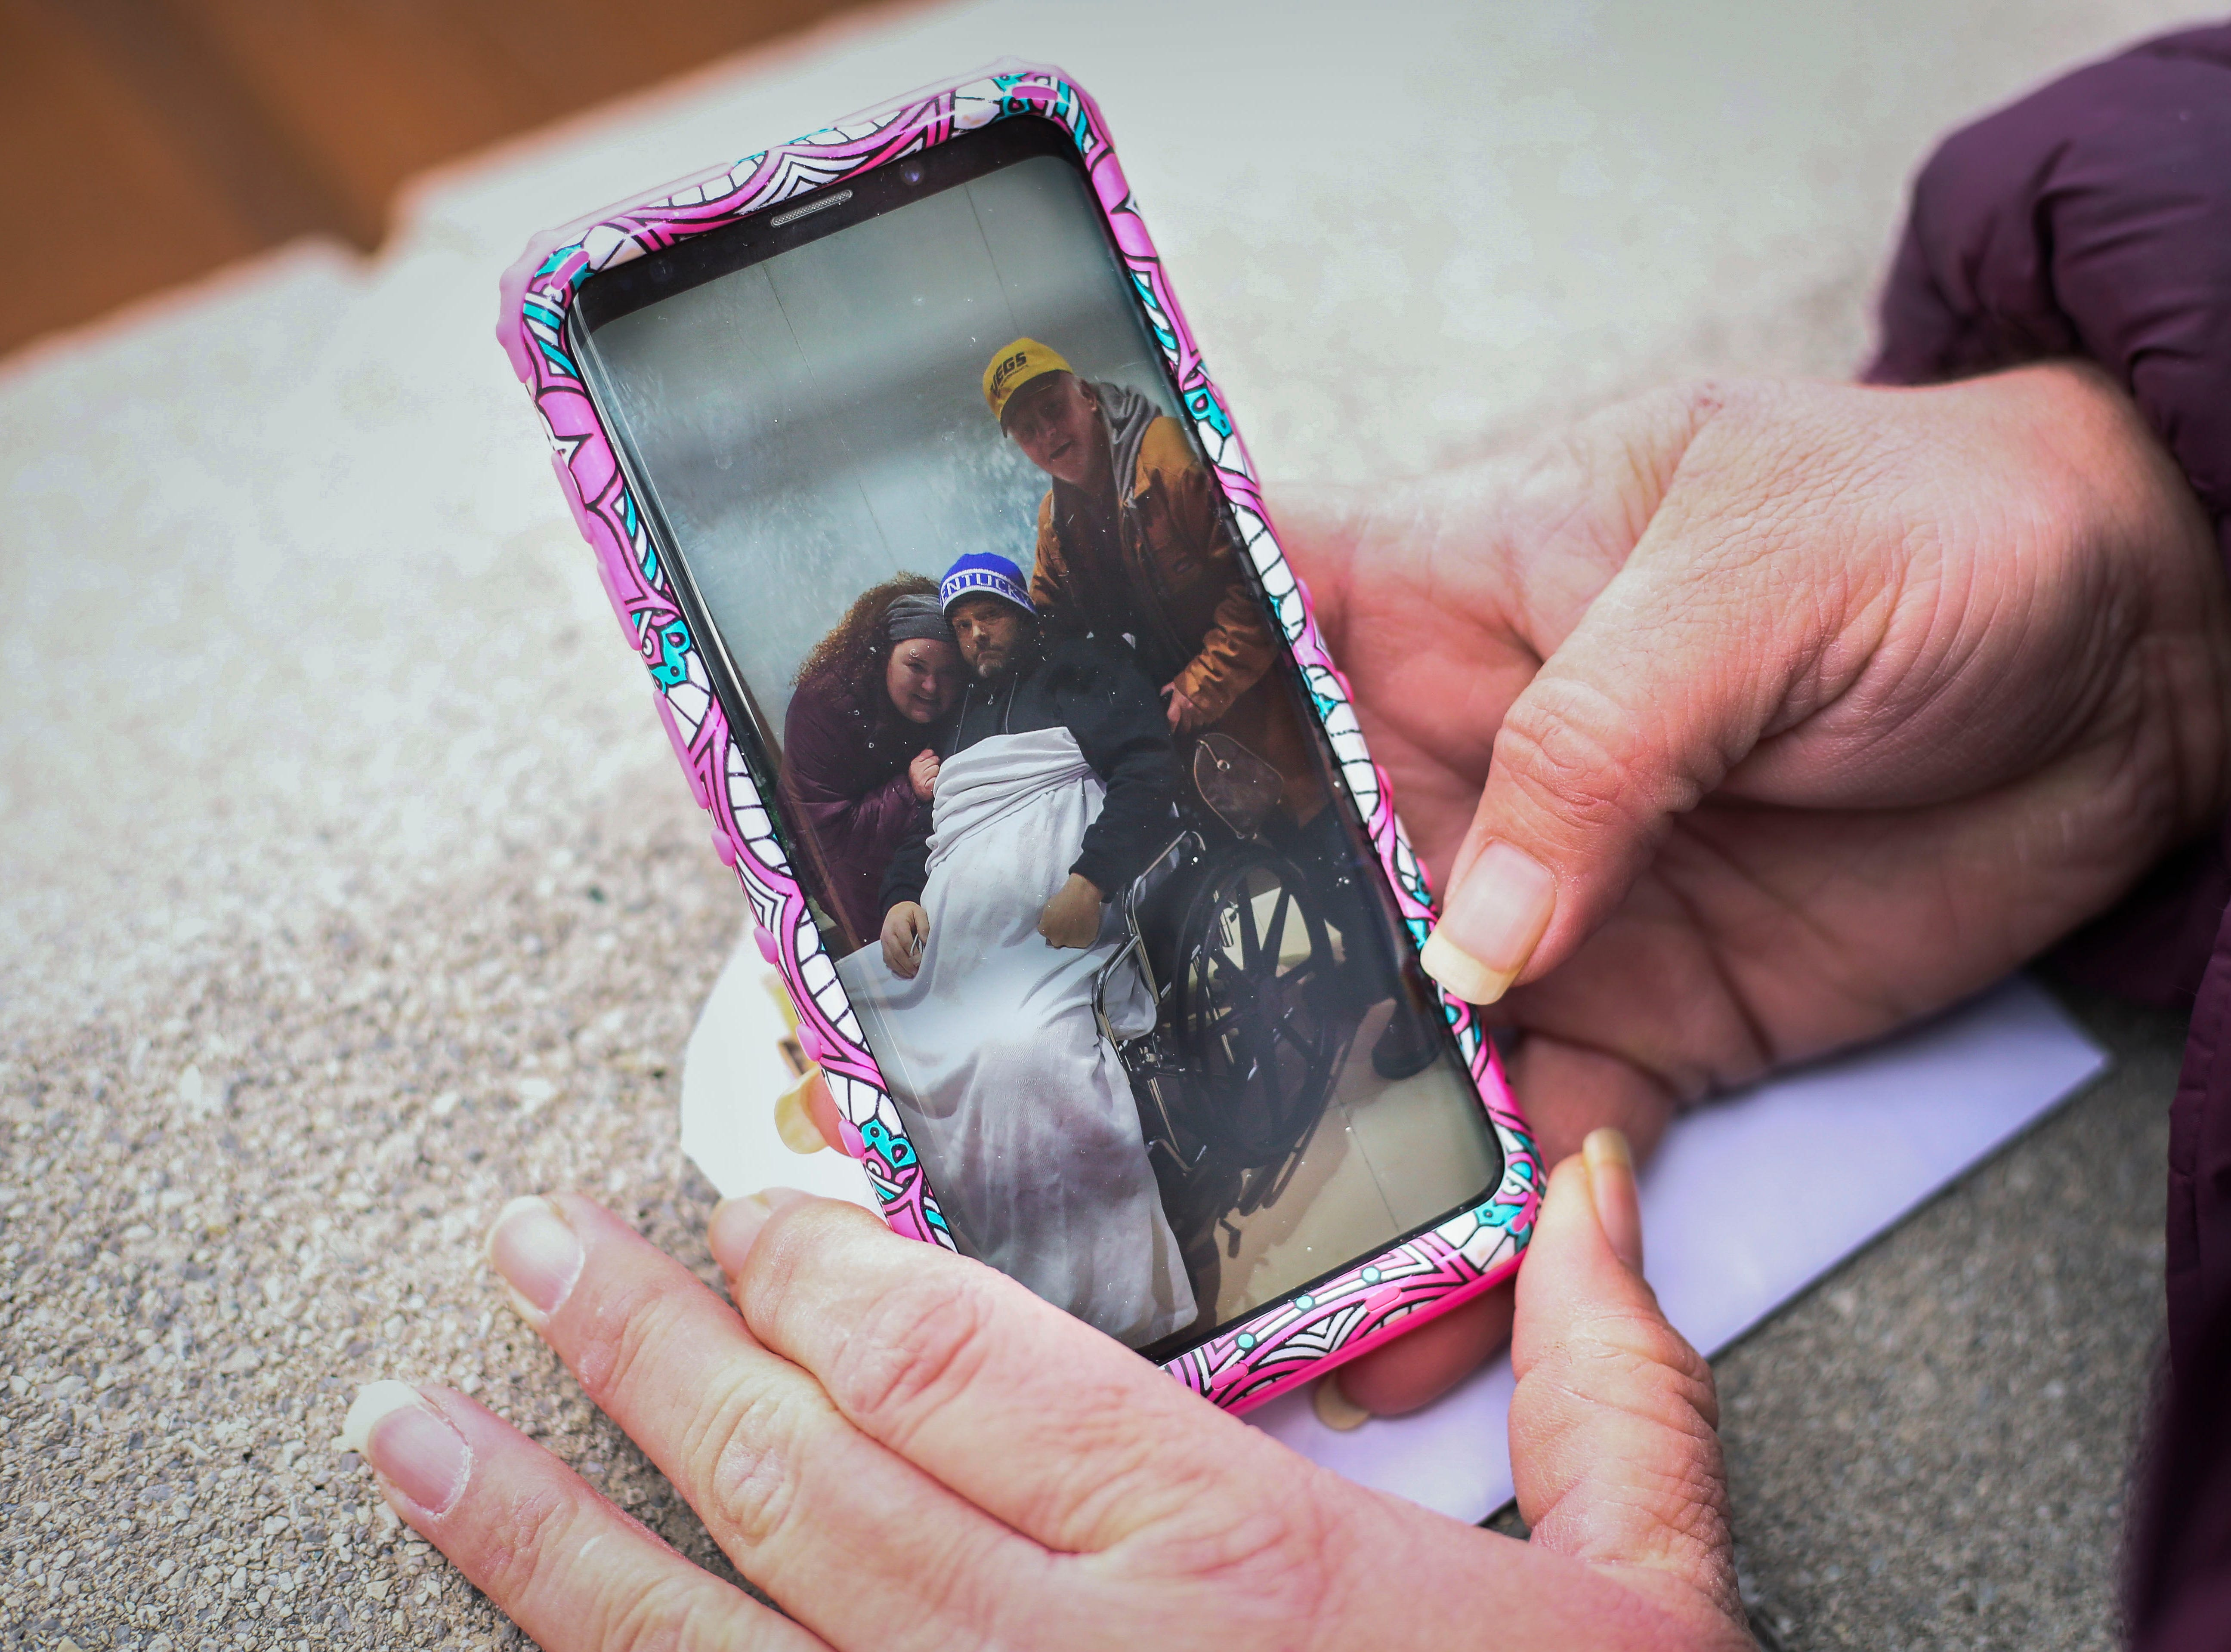 Brandy Stafford shows a photo of herself with her father Tim Ramey, right, and her brother James Ramey from when James was in the hospital in Inez, Kentucky, on Jan. 8, 2019. They lost James to complications due to hepatitis A in November 2018.